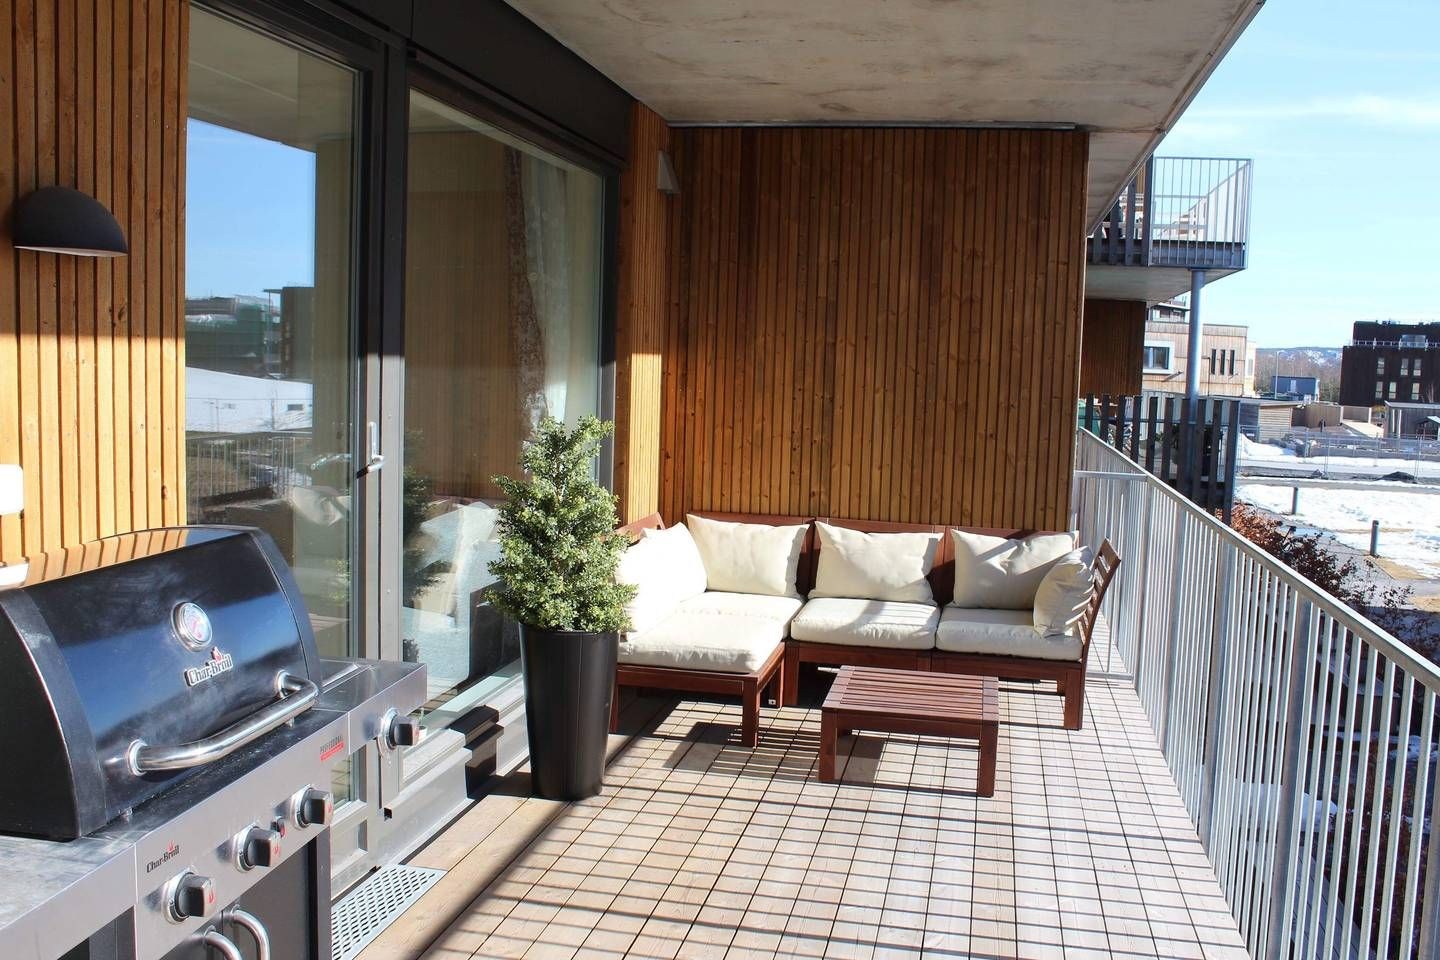 Image Result For Large Balcony Decorating Ideas Outdoor Sectional Sofa Outdoor Sectional Decor